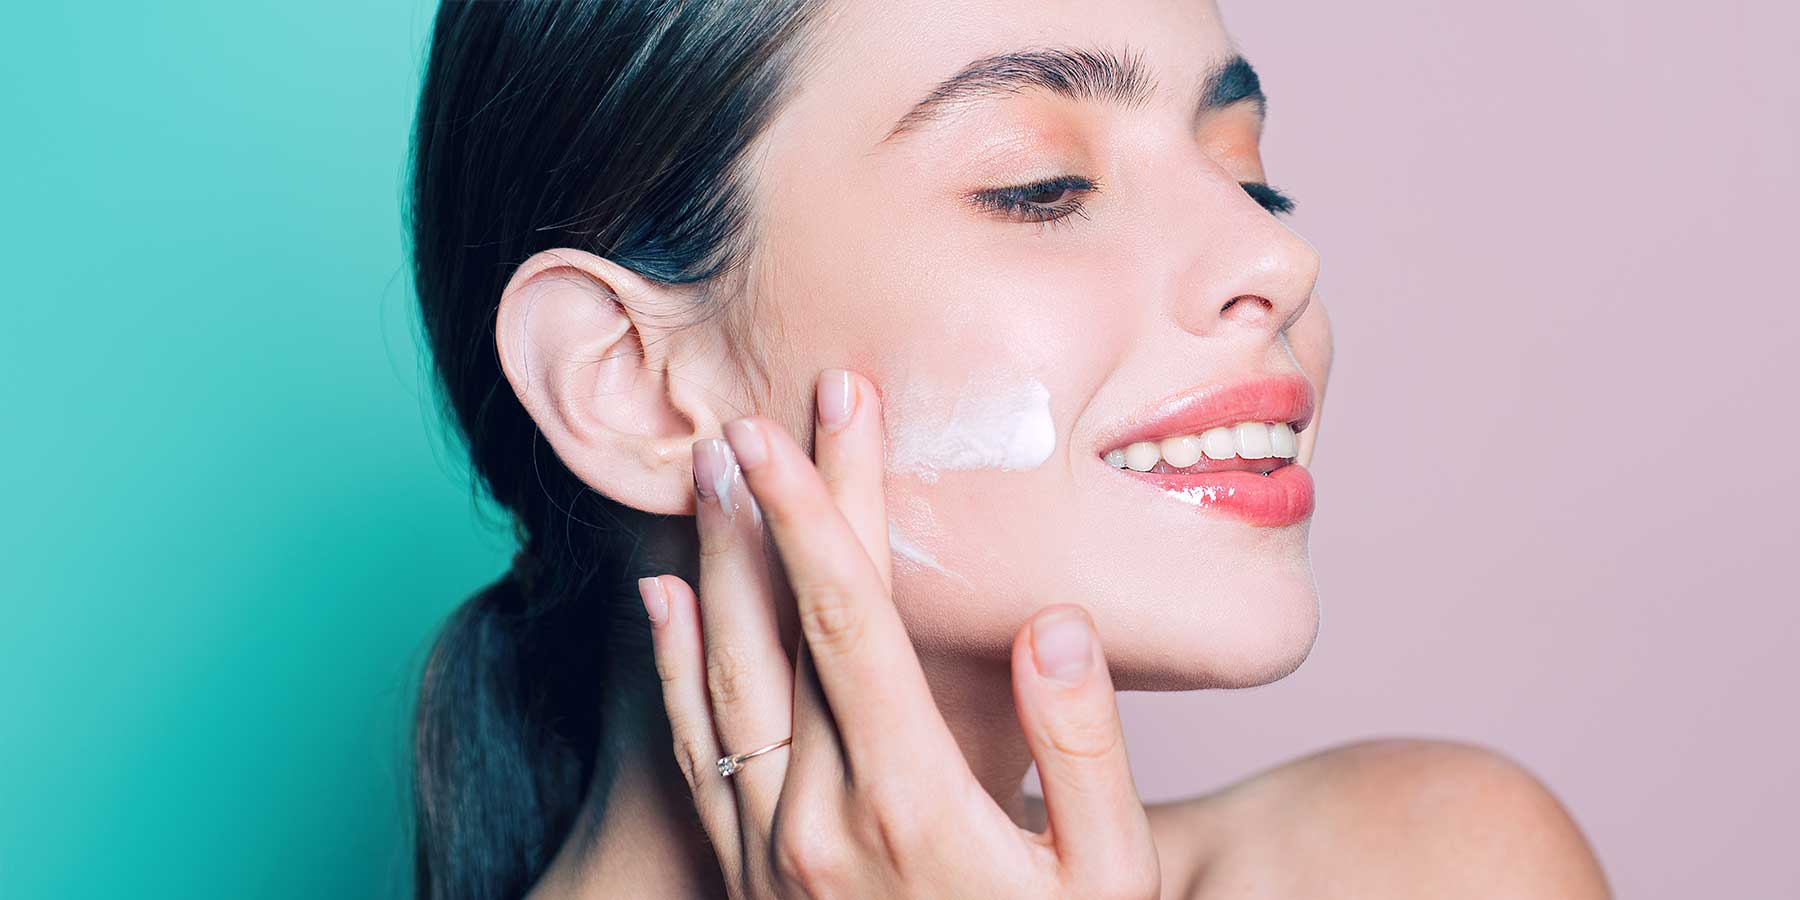 How to treat dehydrated skin